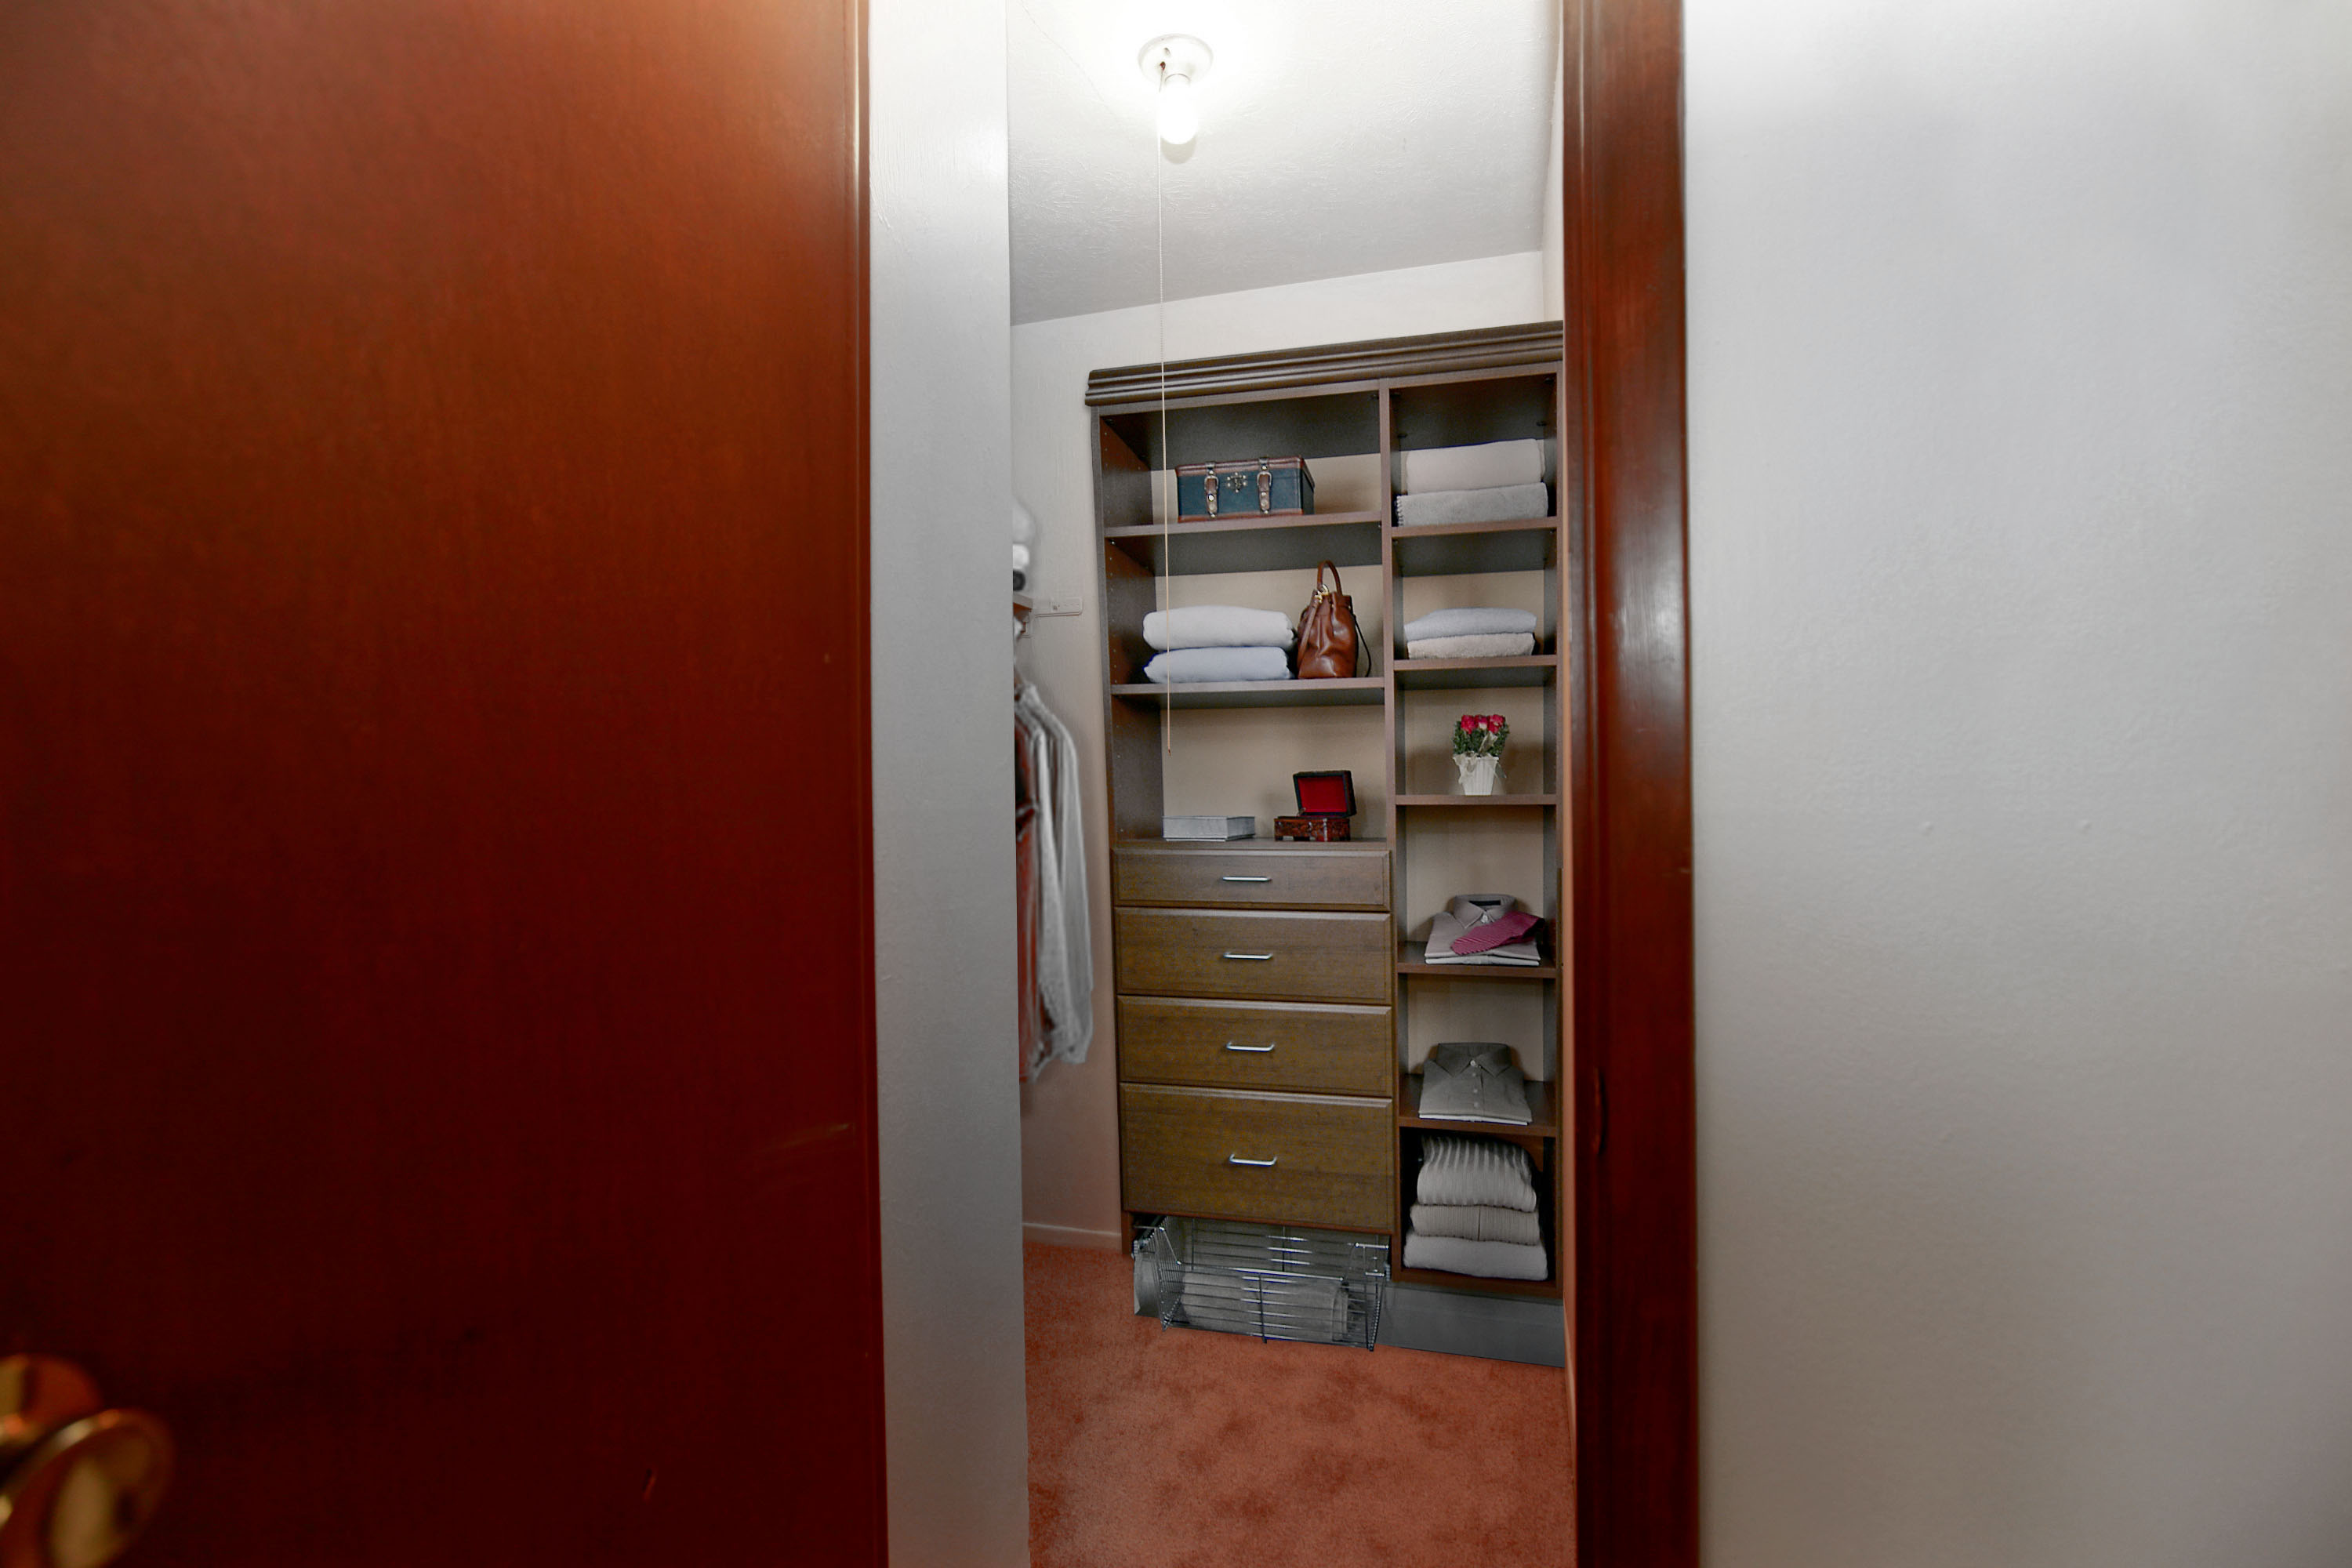 1C Walk-in Closet at the Greenridge on Euclid Apartments in Euclid, OH